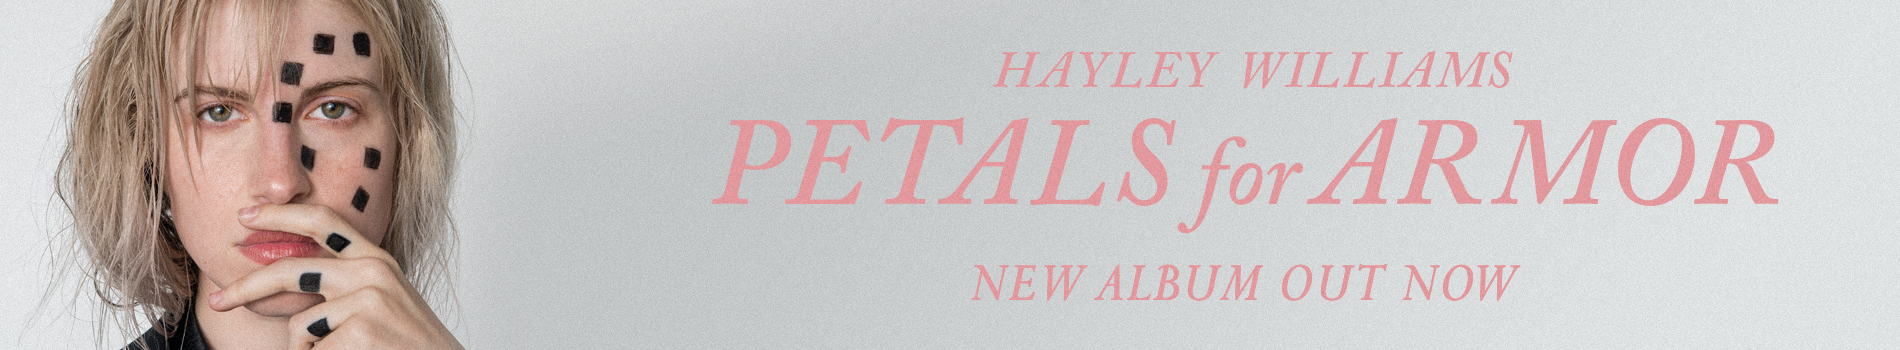 Hayley Williams - Masthead Banner